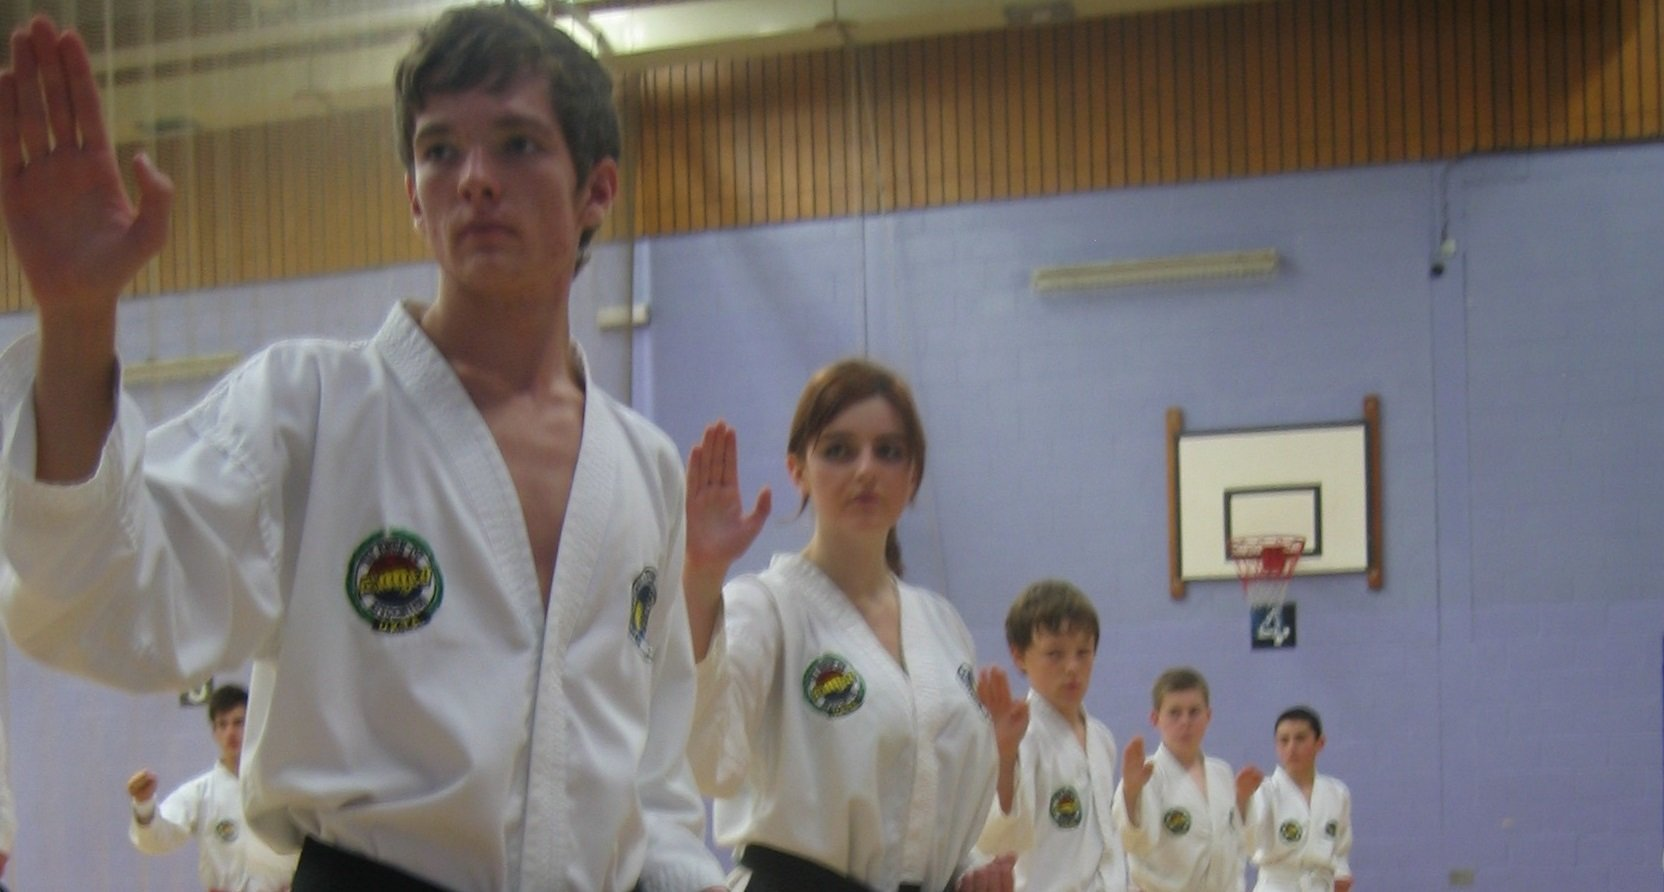 Children in Taekwon-Do